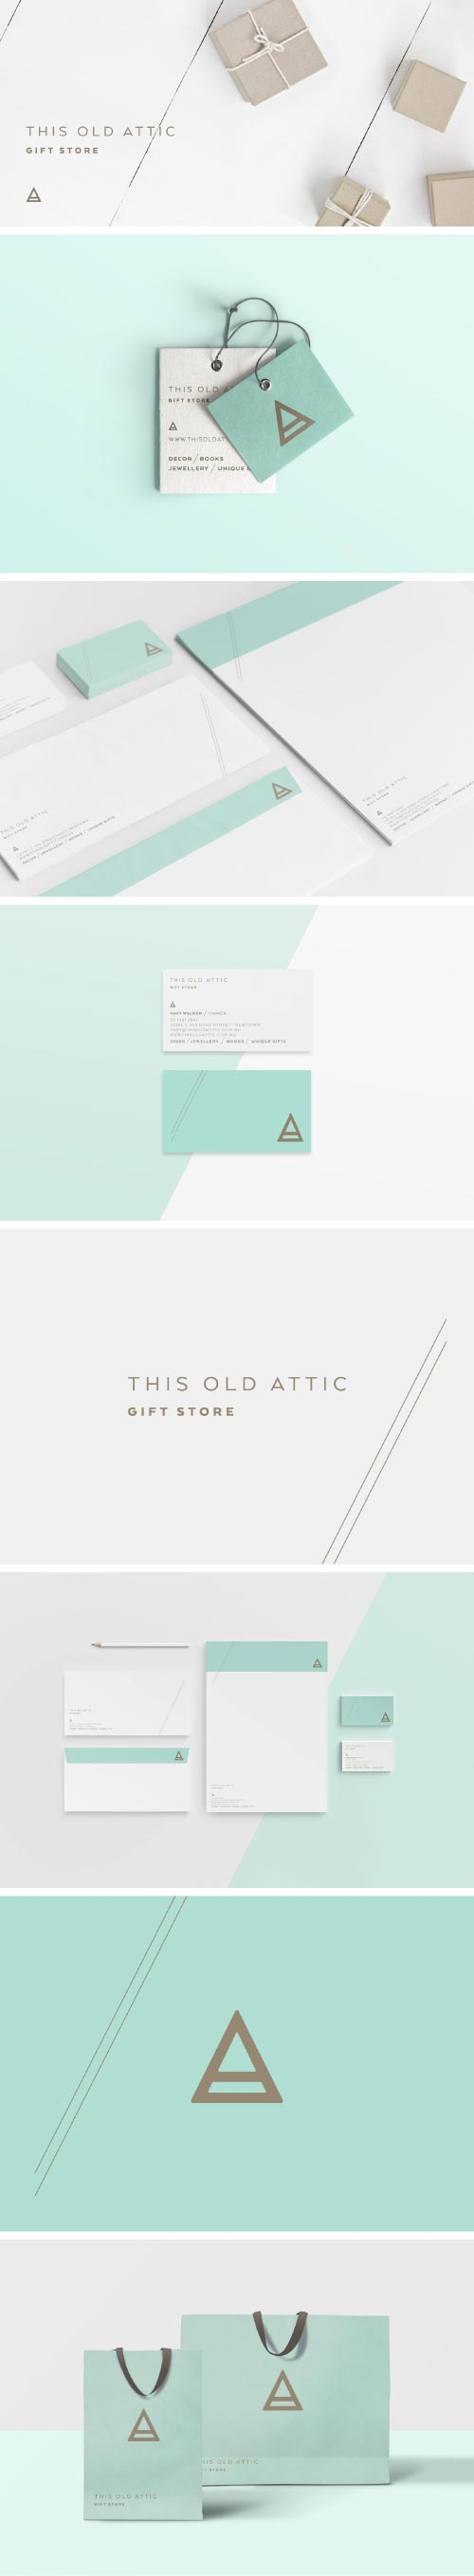 This Old Attic branding and design project created by Sydney designer, Lisa Furze